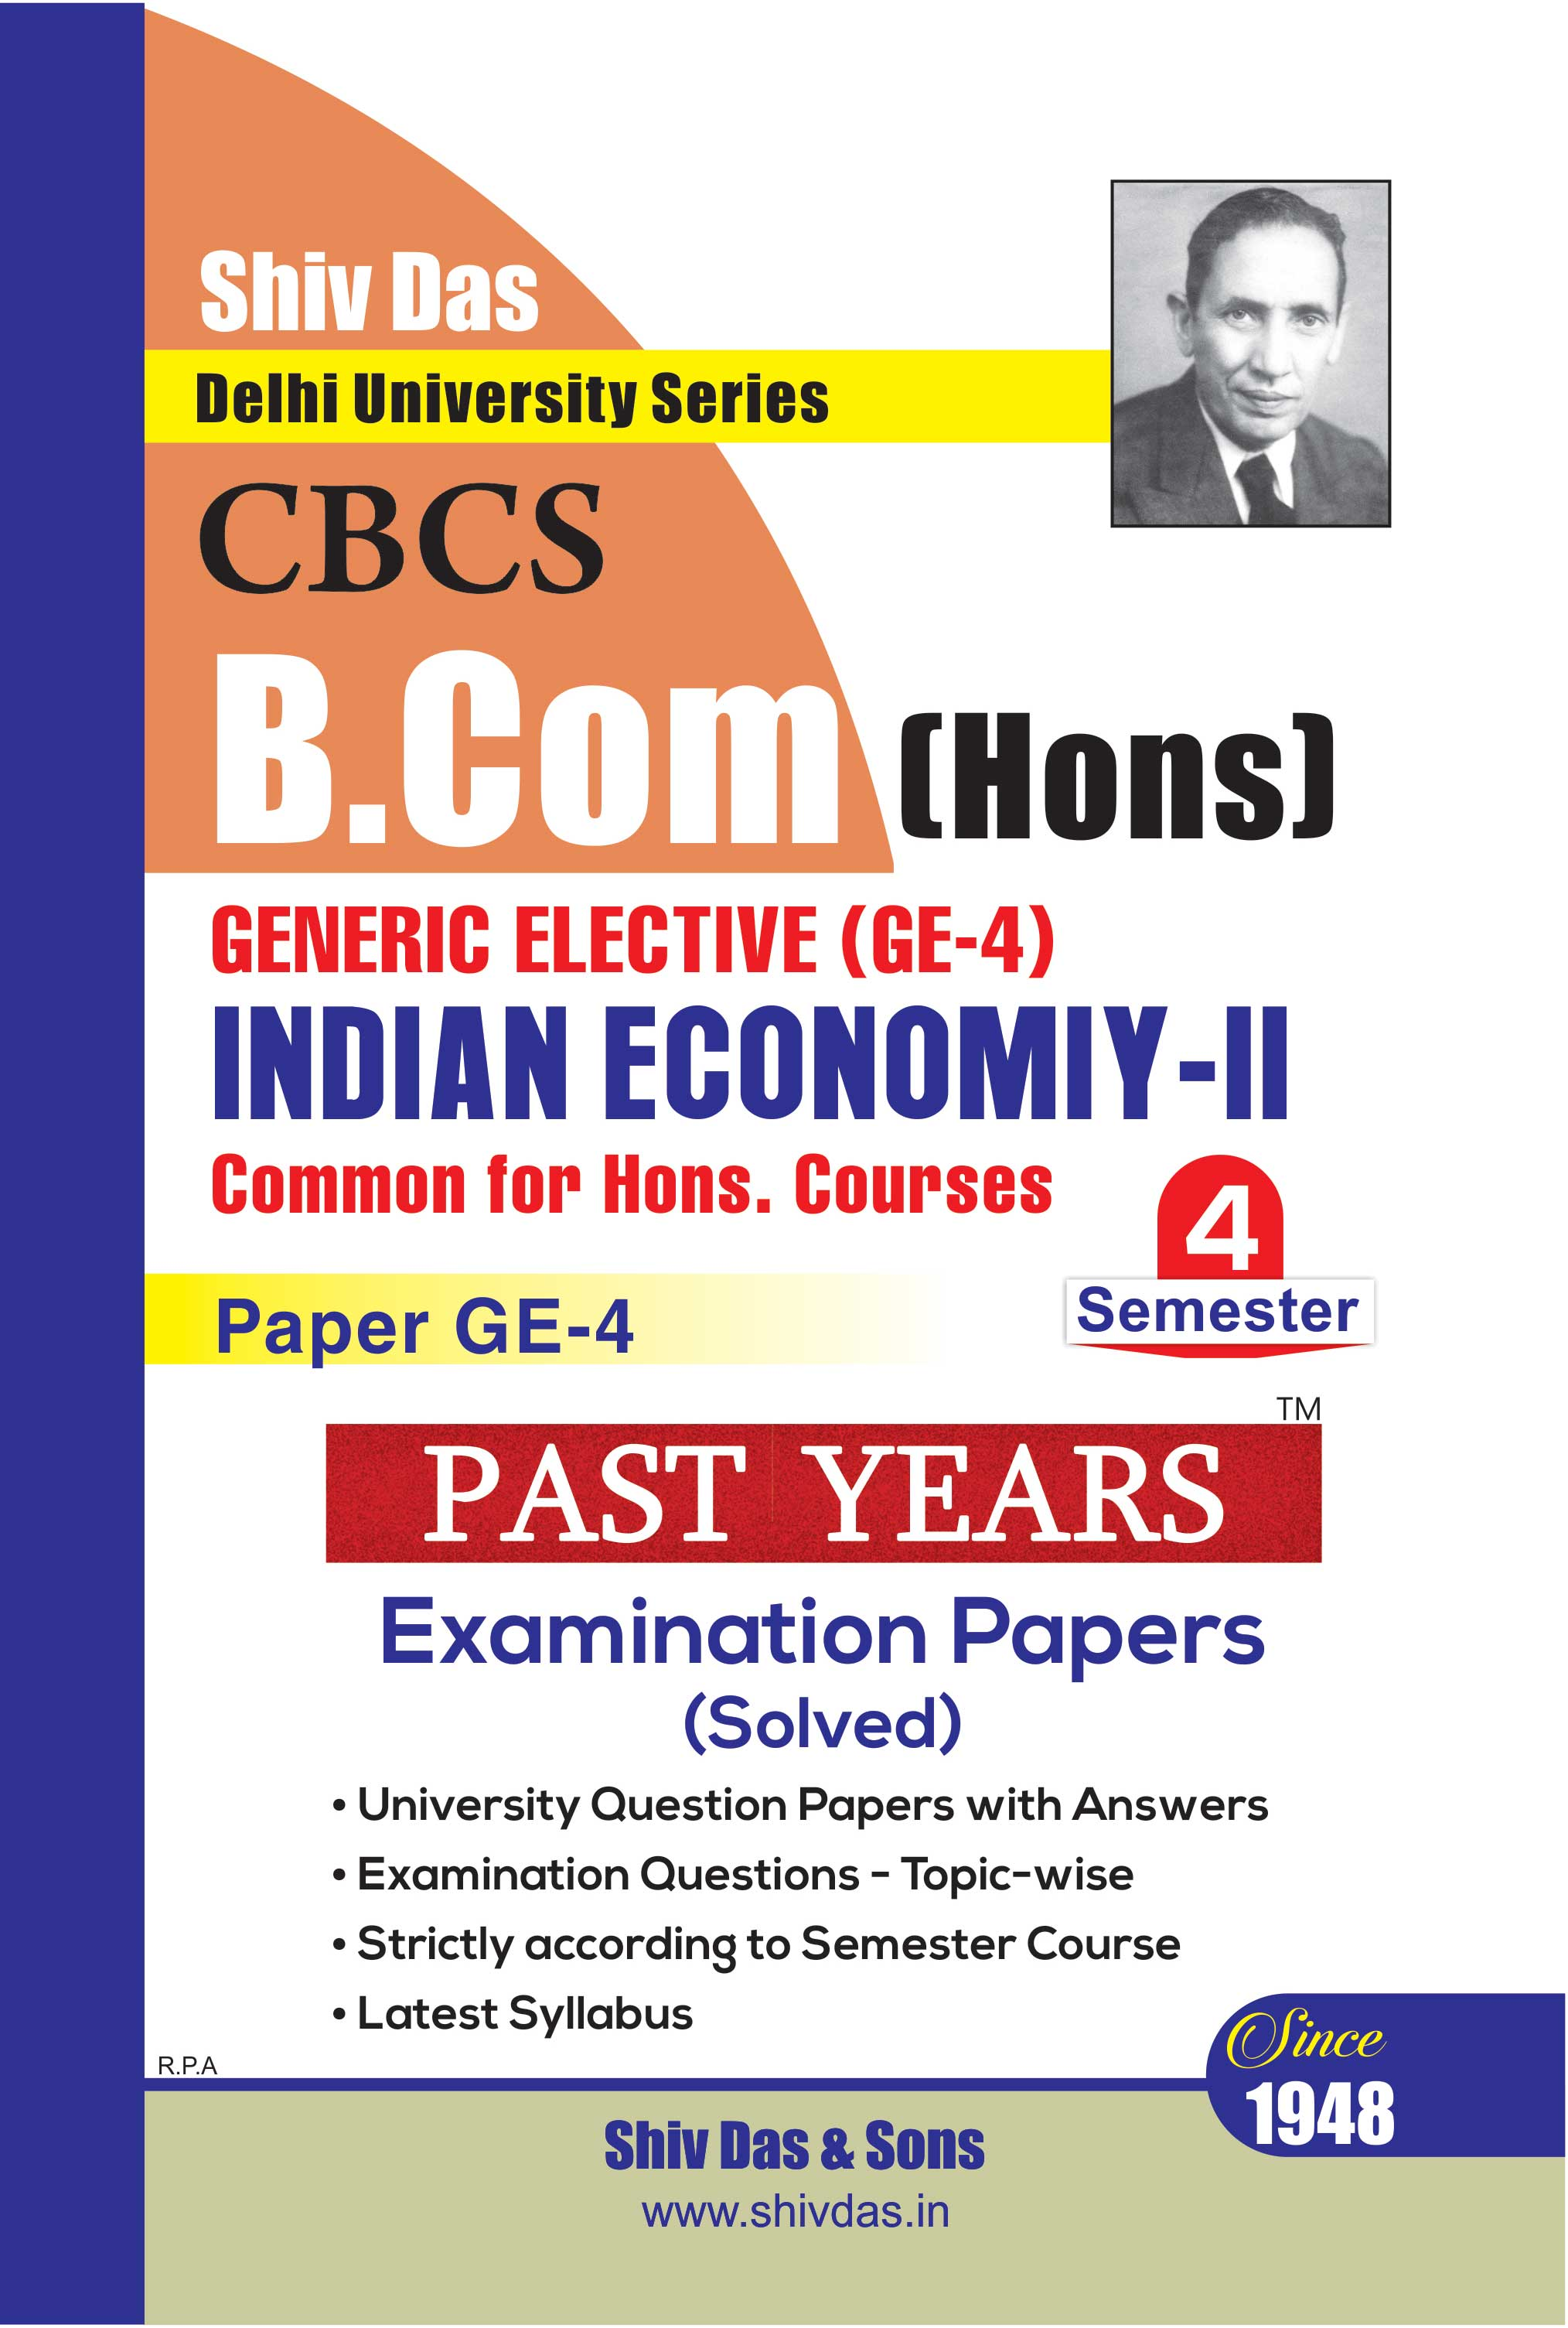 Indian Economy-II for B.Com Hons Semester 4 for Delhi University by Shiv Das